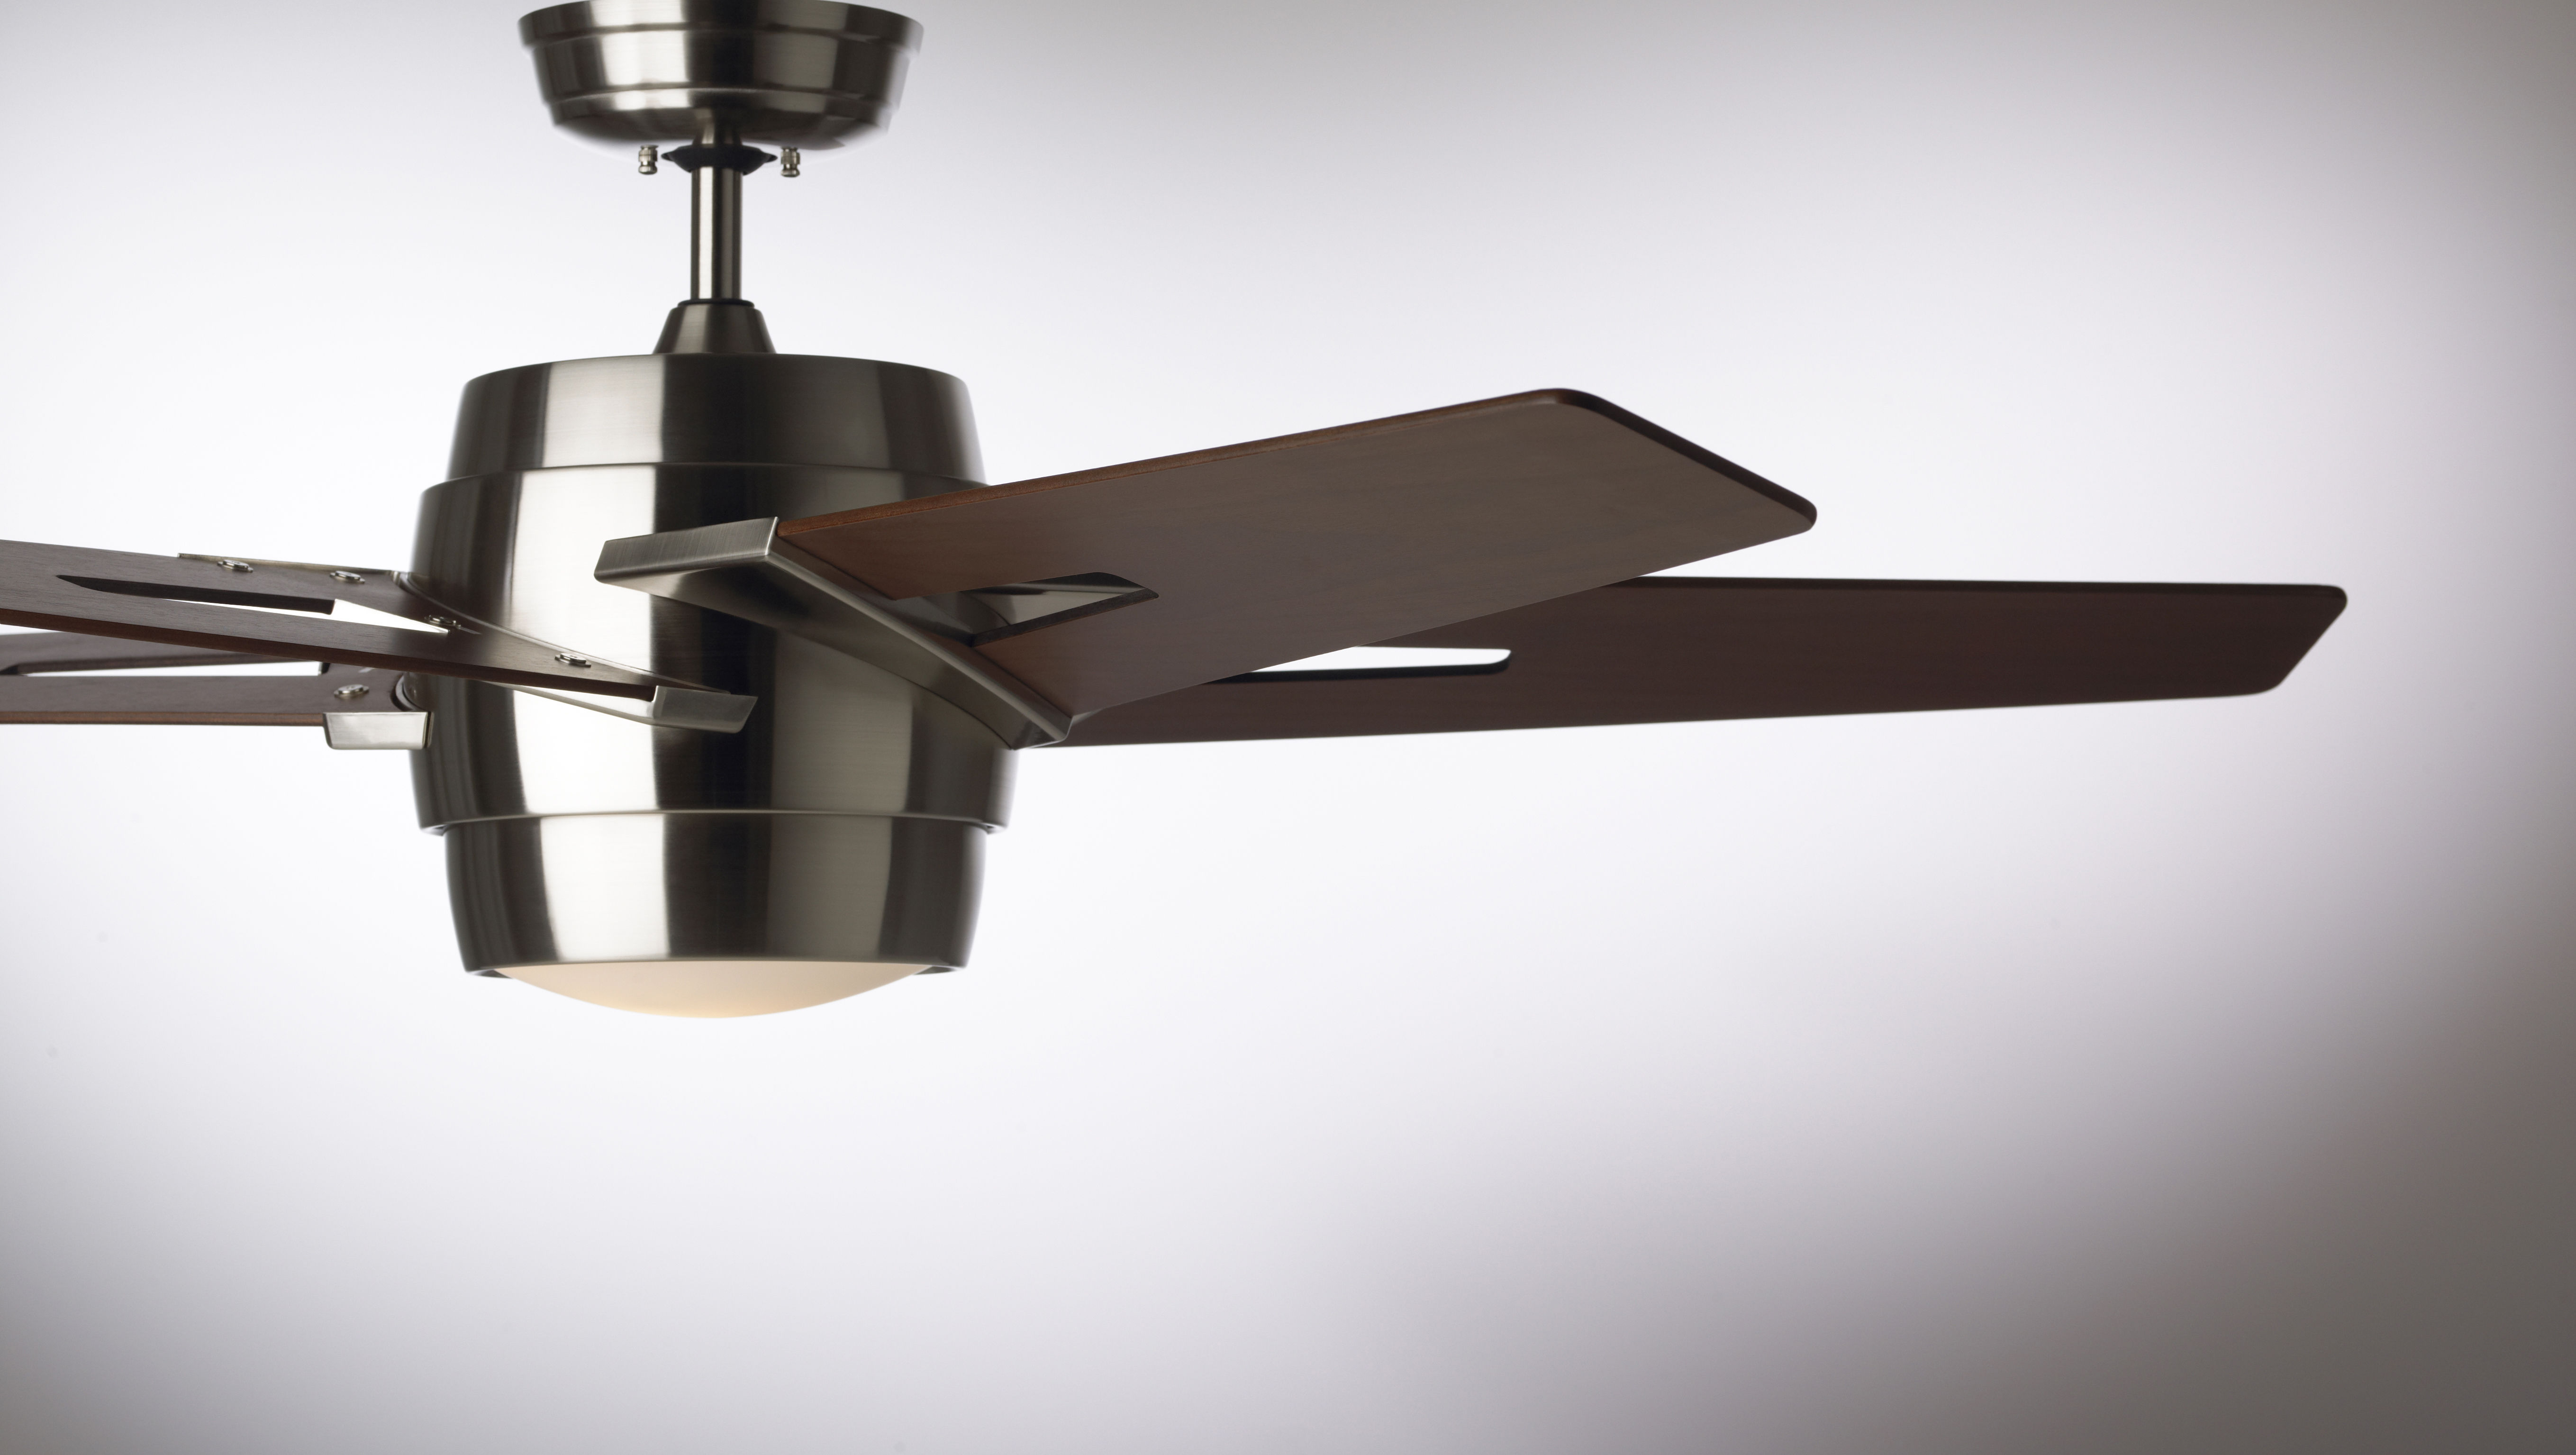 Emerson Cf550wabs Brushed Steel Luxe Eco 54 5 Blade Ceiling Fan Blades And Light Kit Included Lightingdirect Com